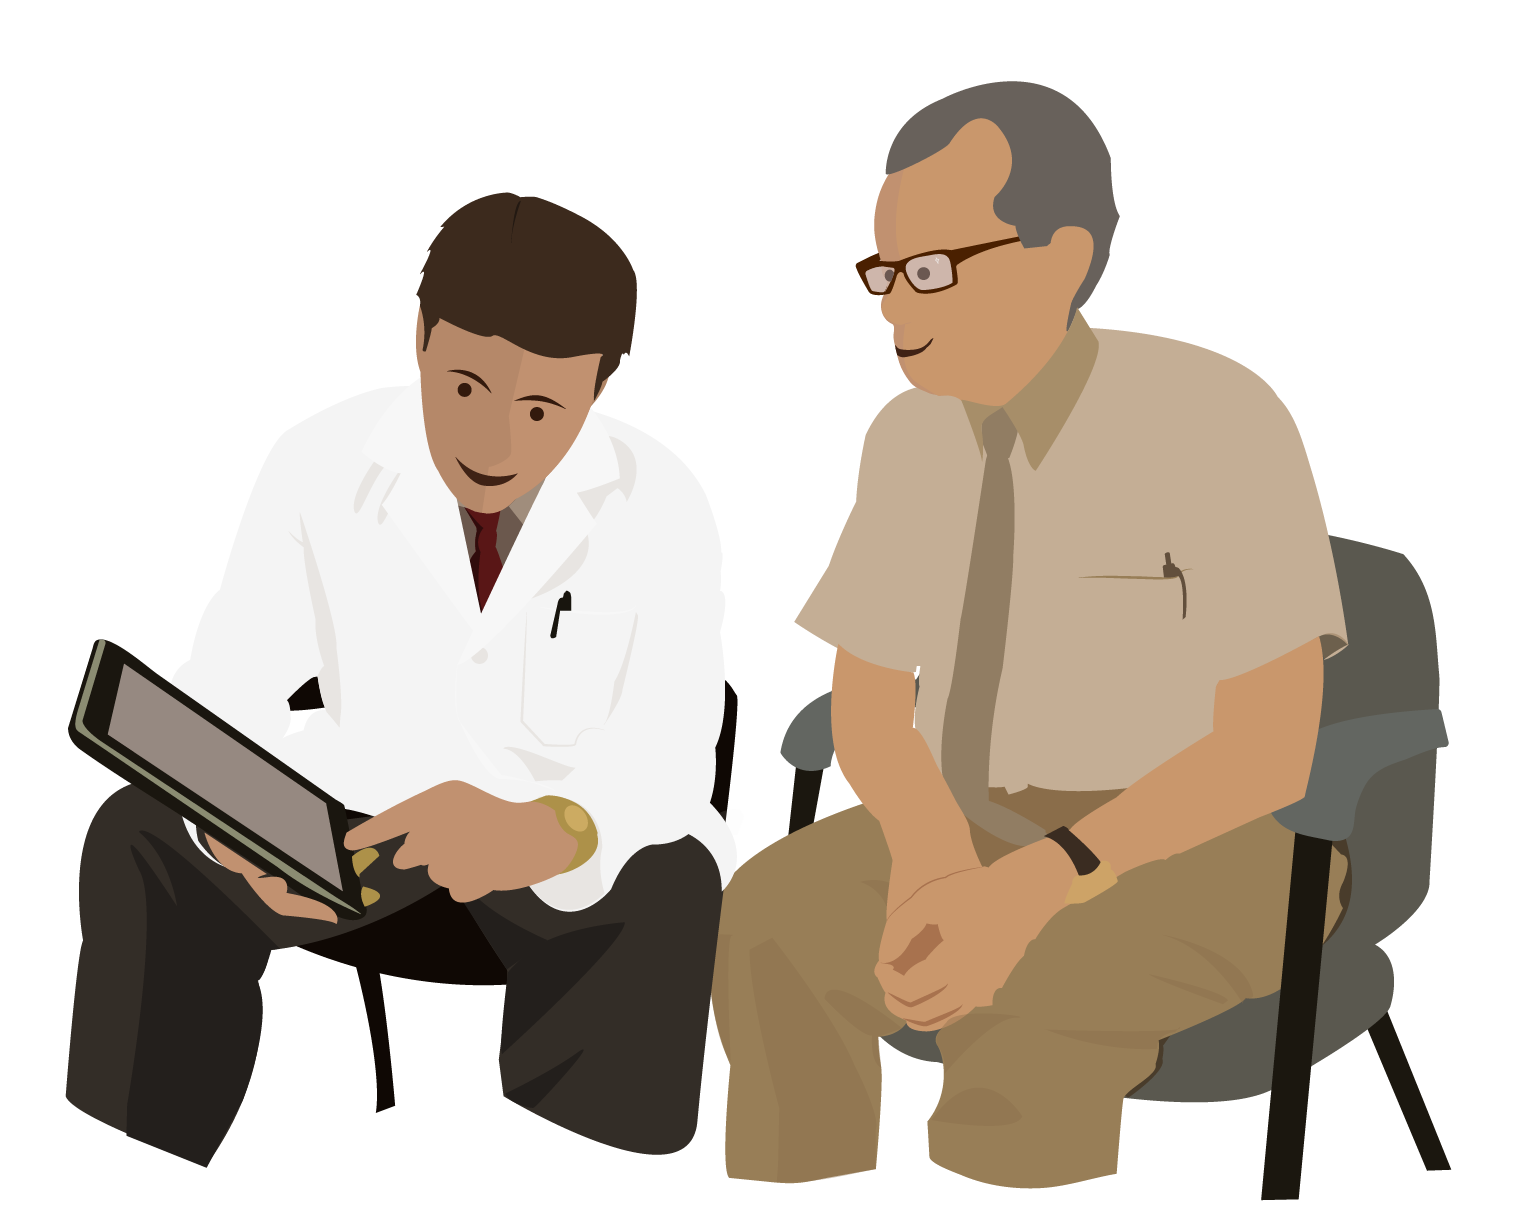 Register clipart patient information